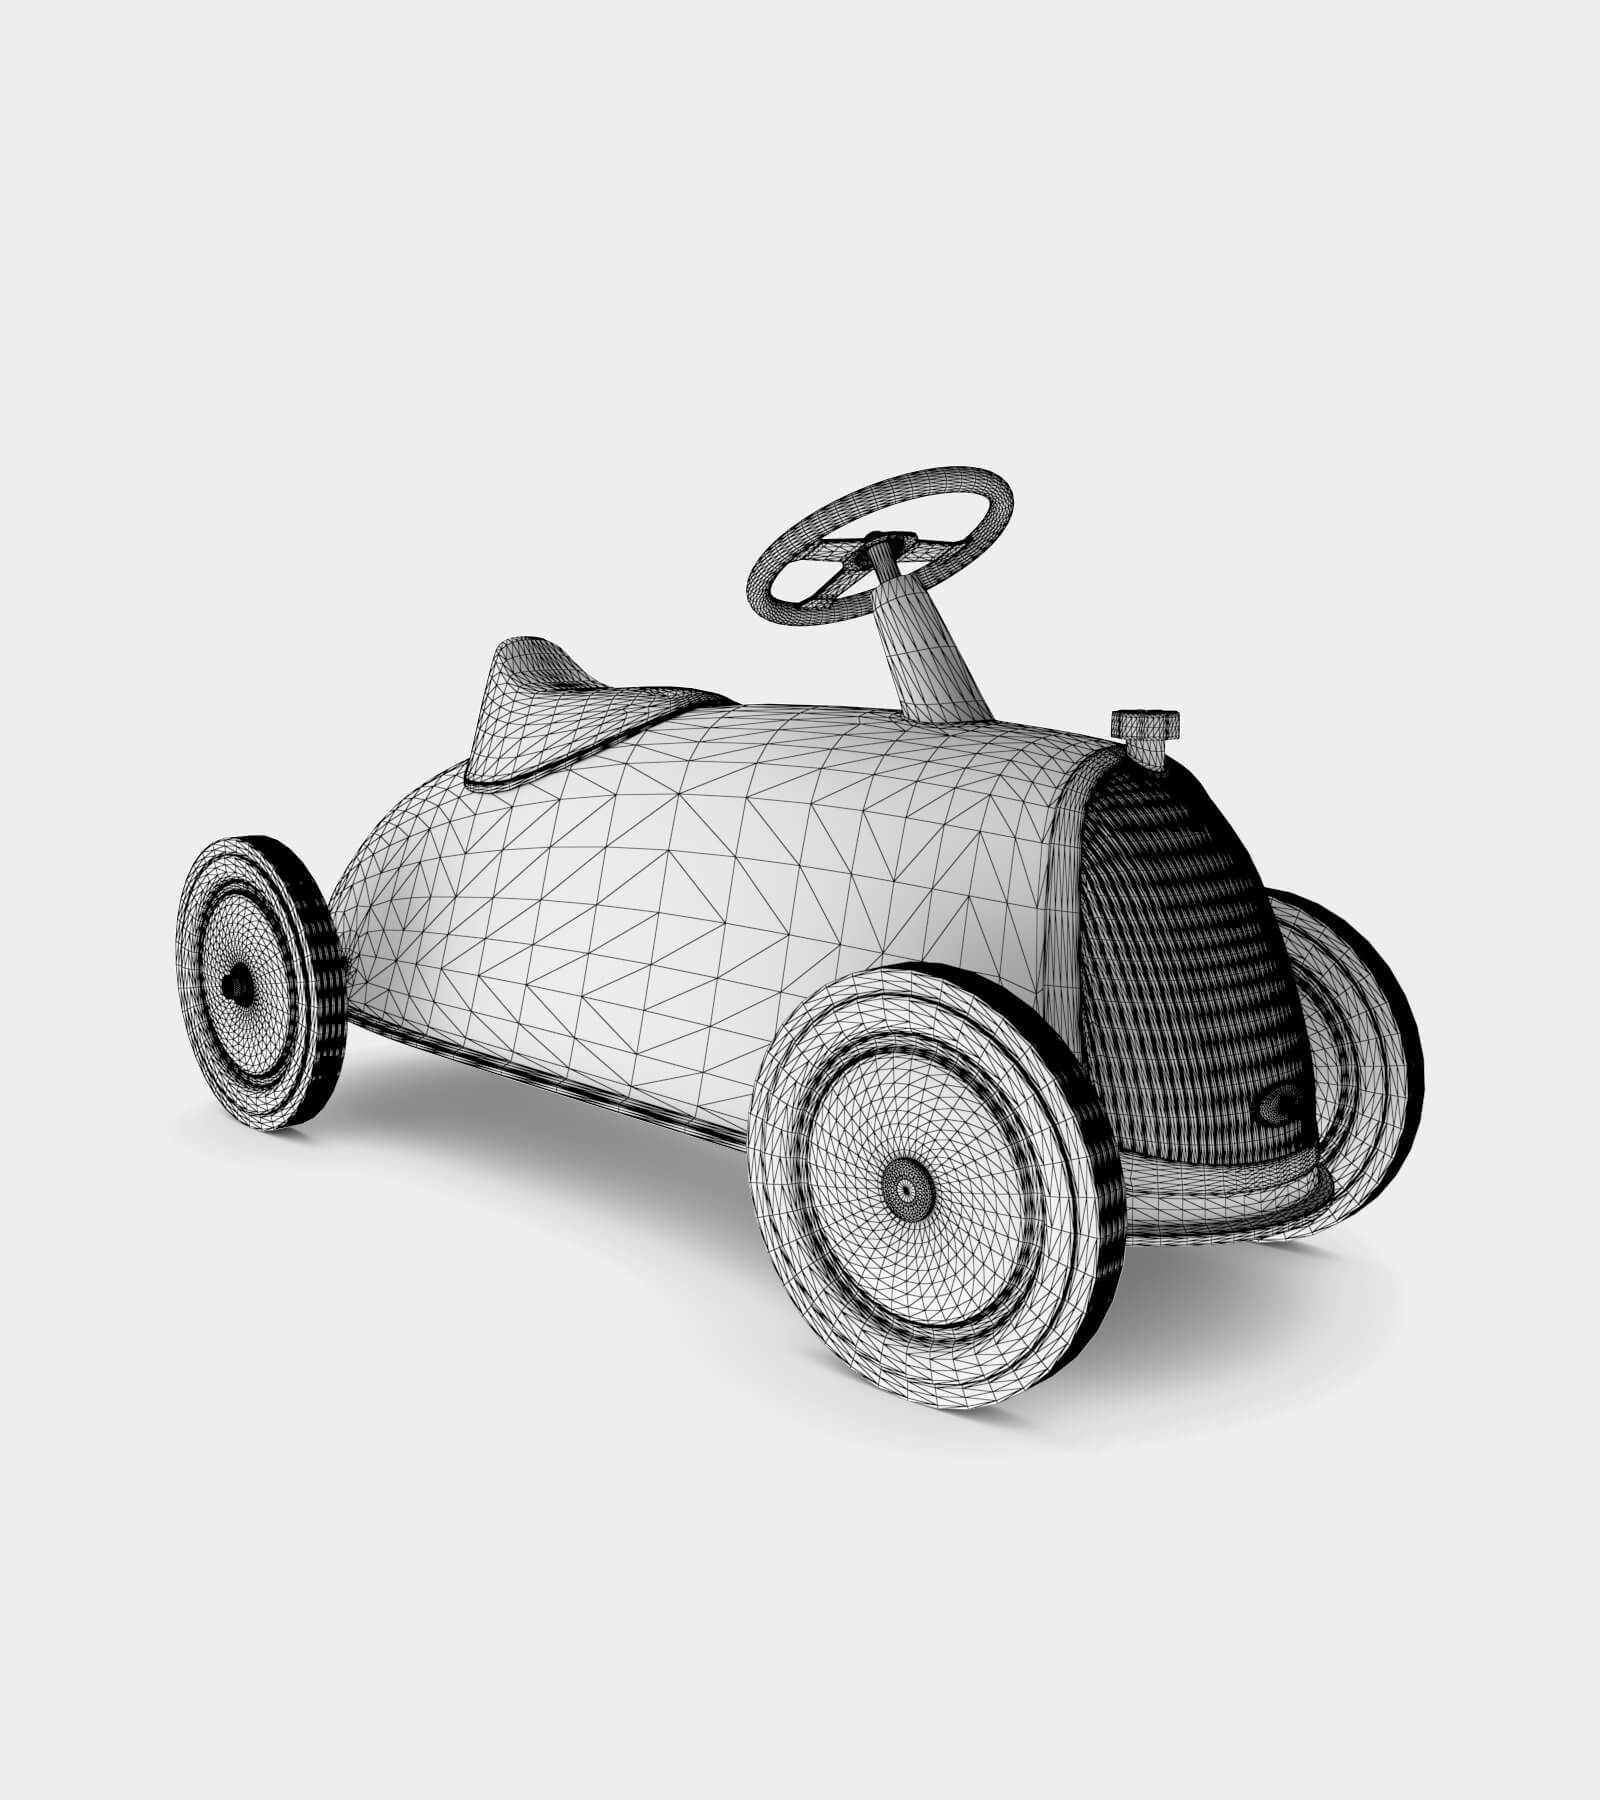 Retro Toy car-wire-22 3D Model